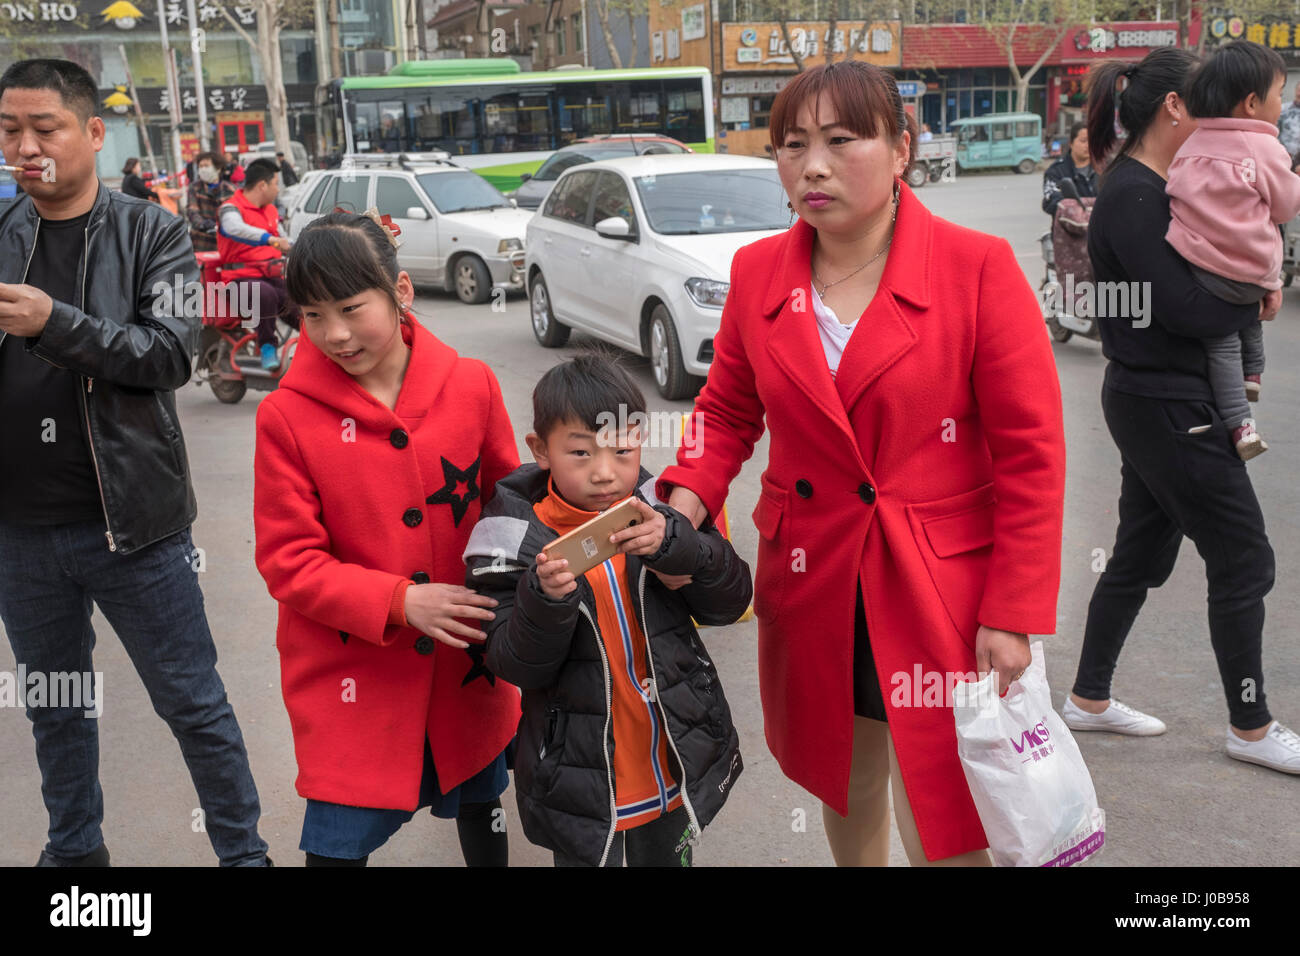 A mother with two children, one girl and one boy, in Xiong County, Hebei province, China. 09-Apr-2017 - Stock Image